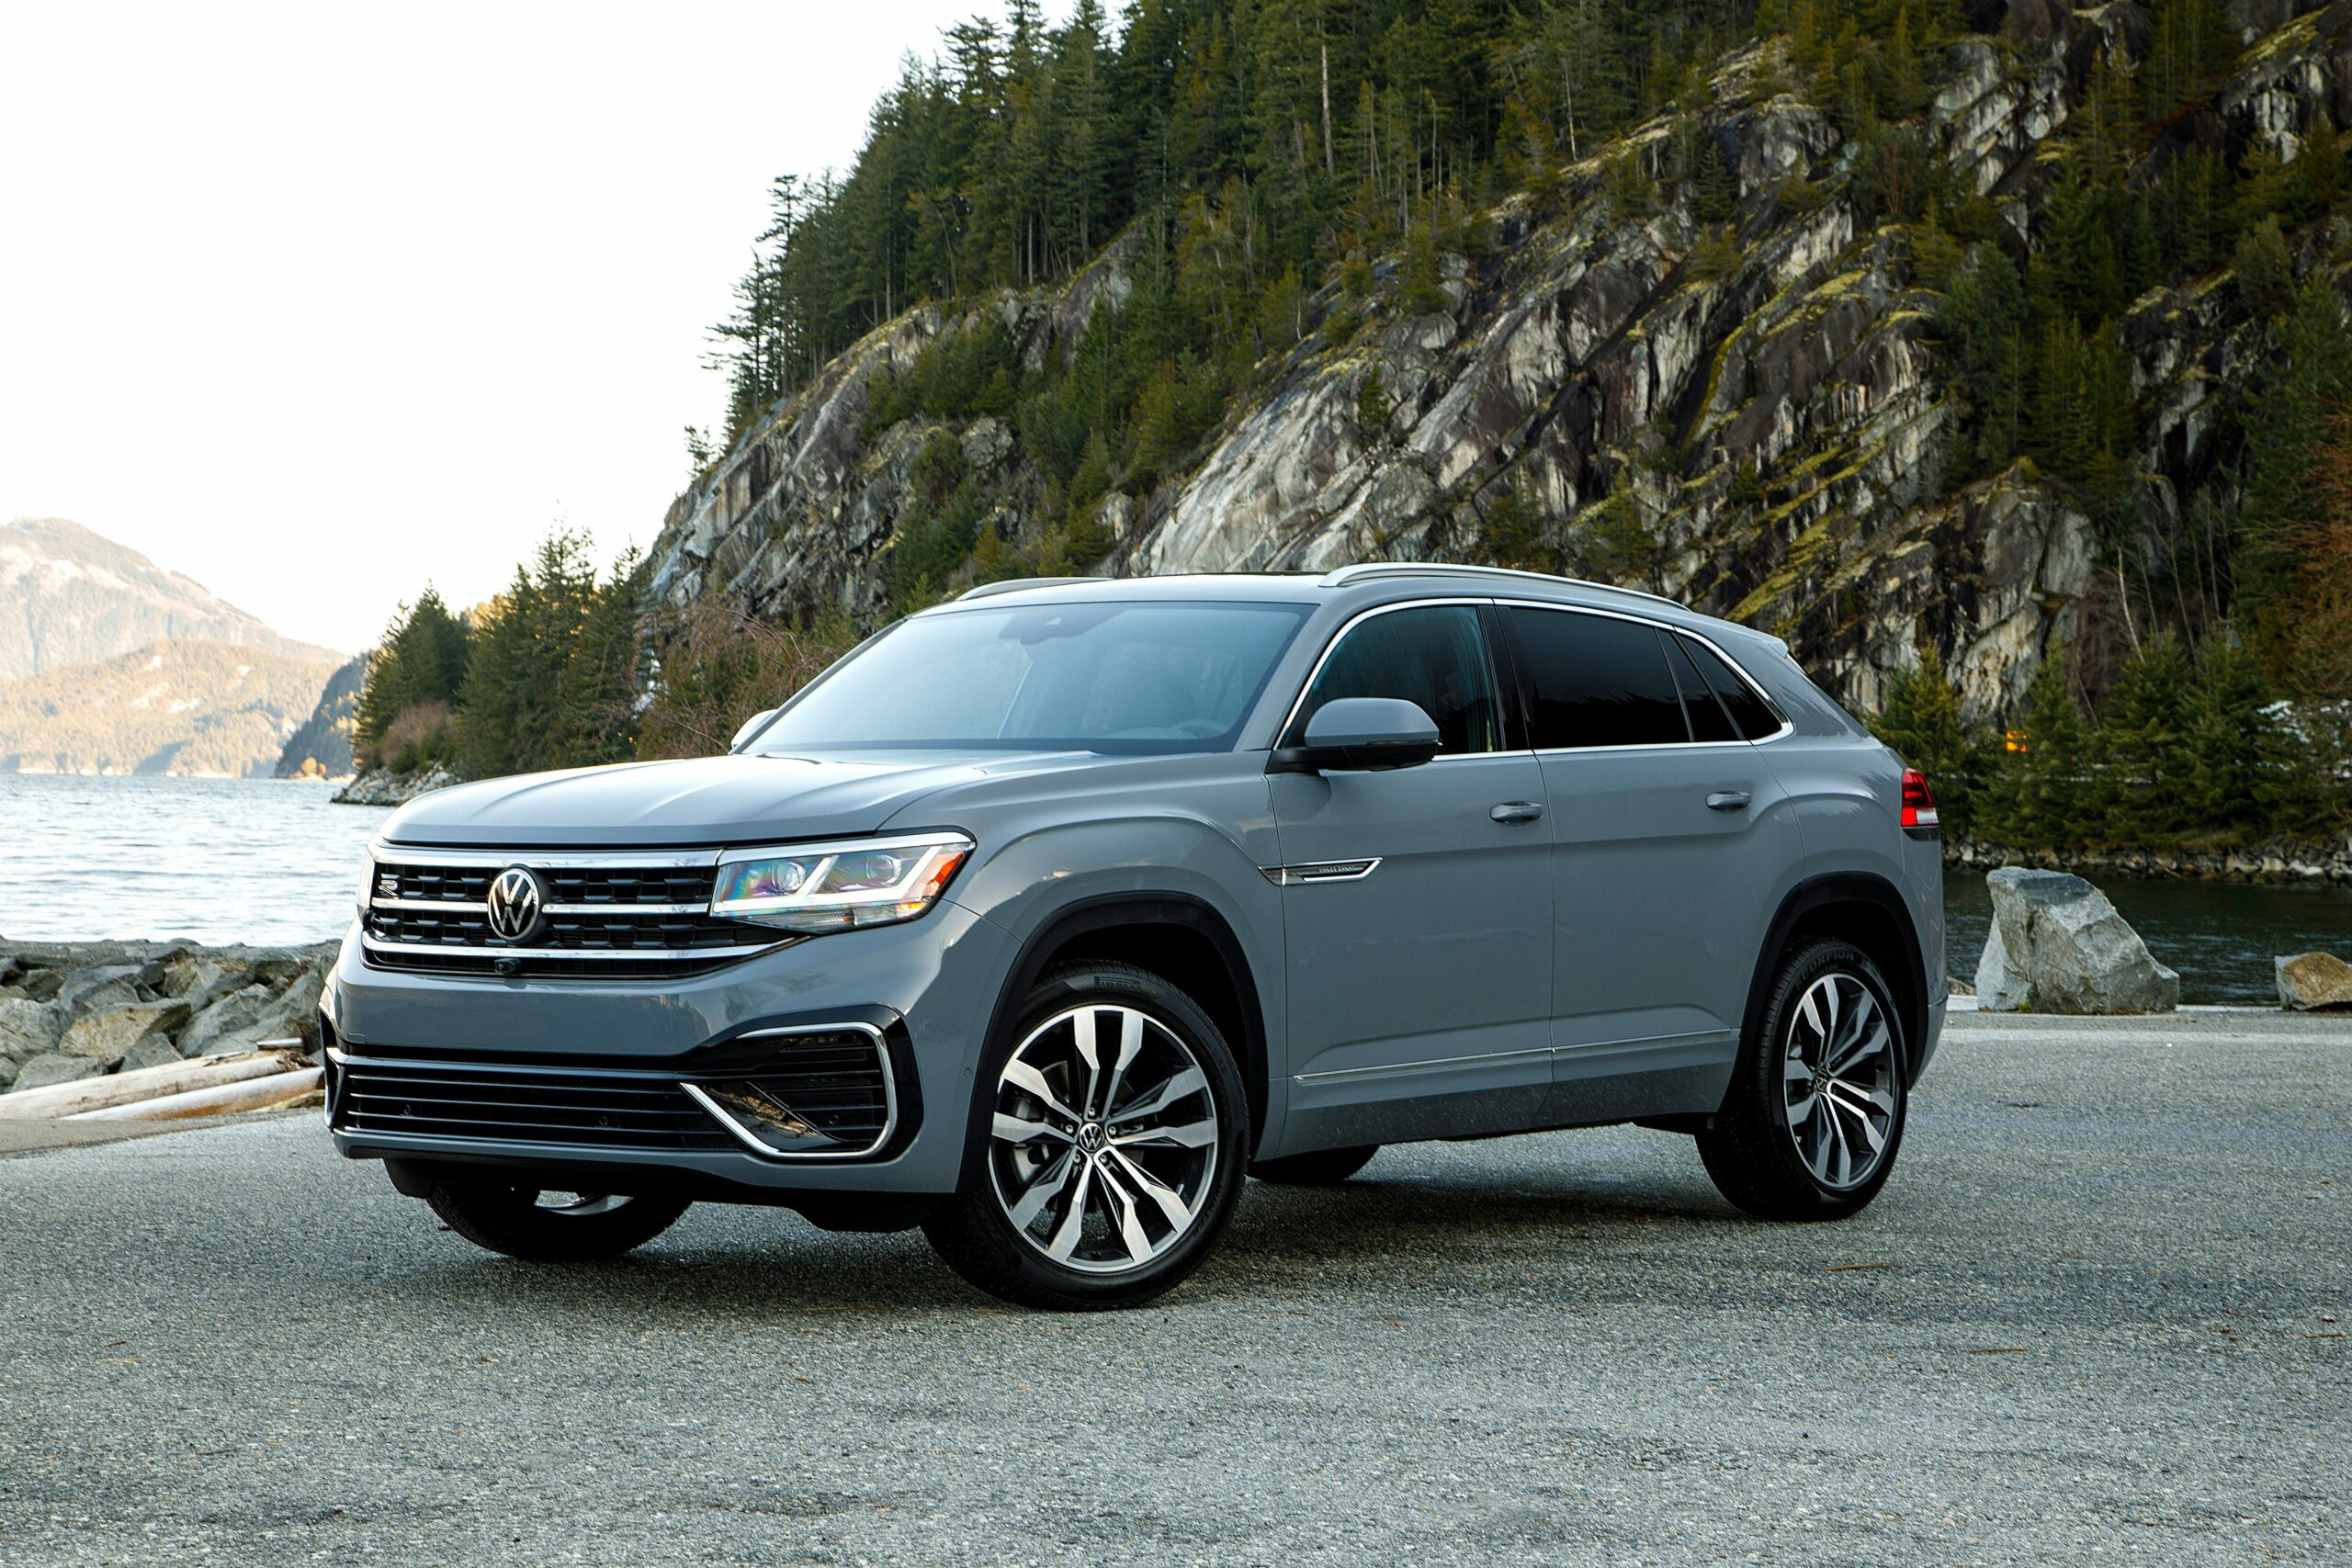 volkswagen atlas review 2021 Performance and New Engine